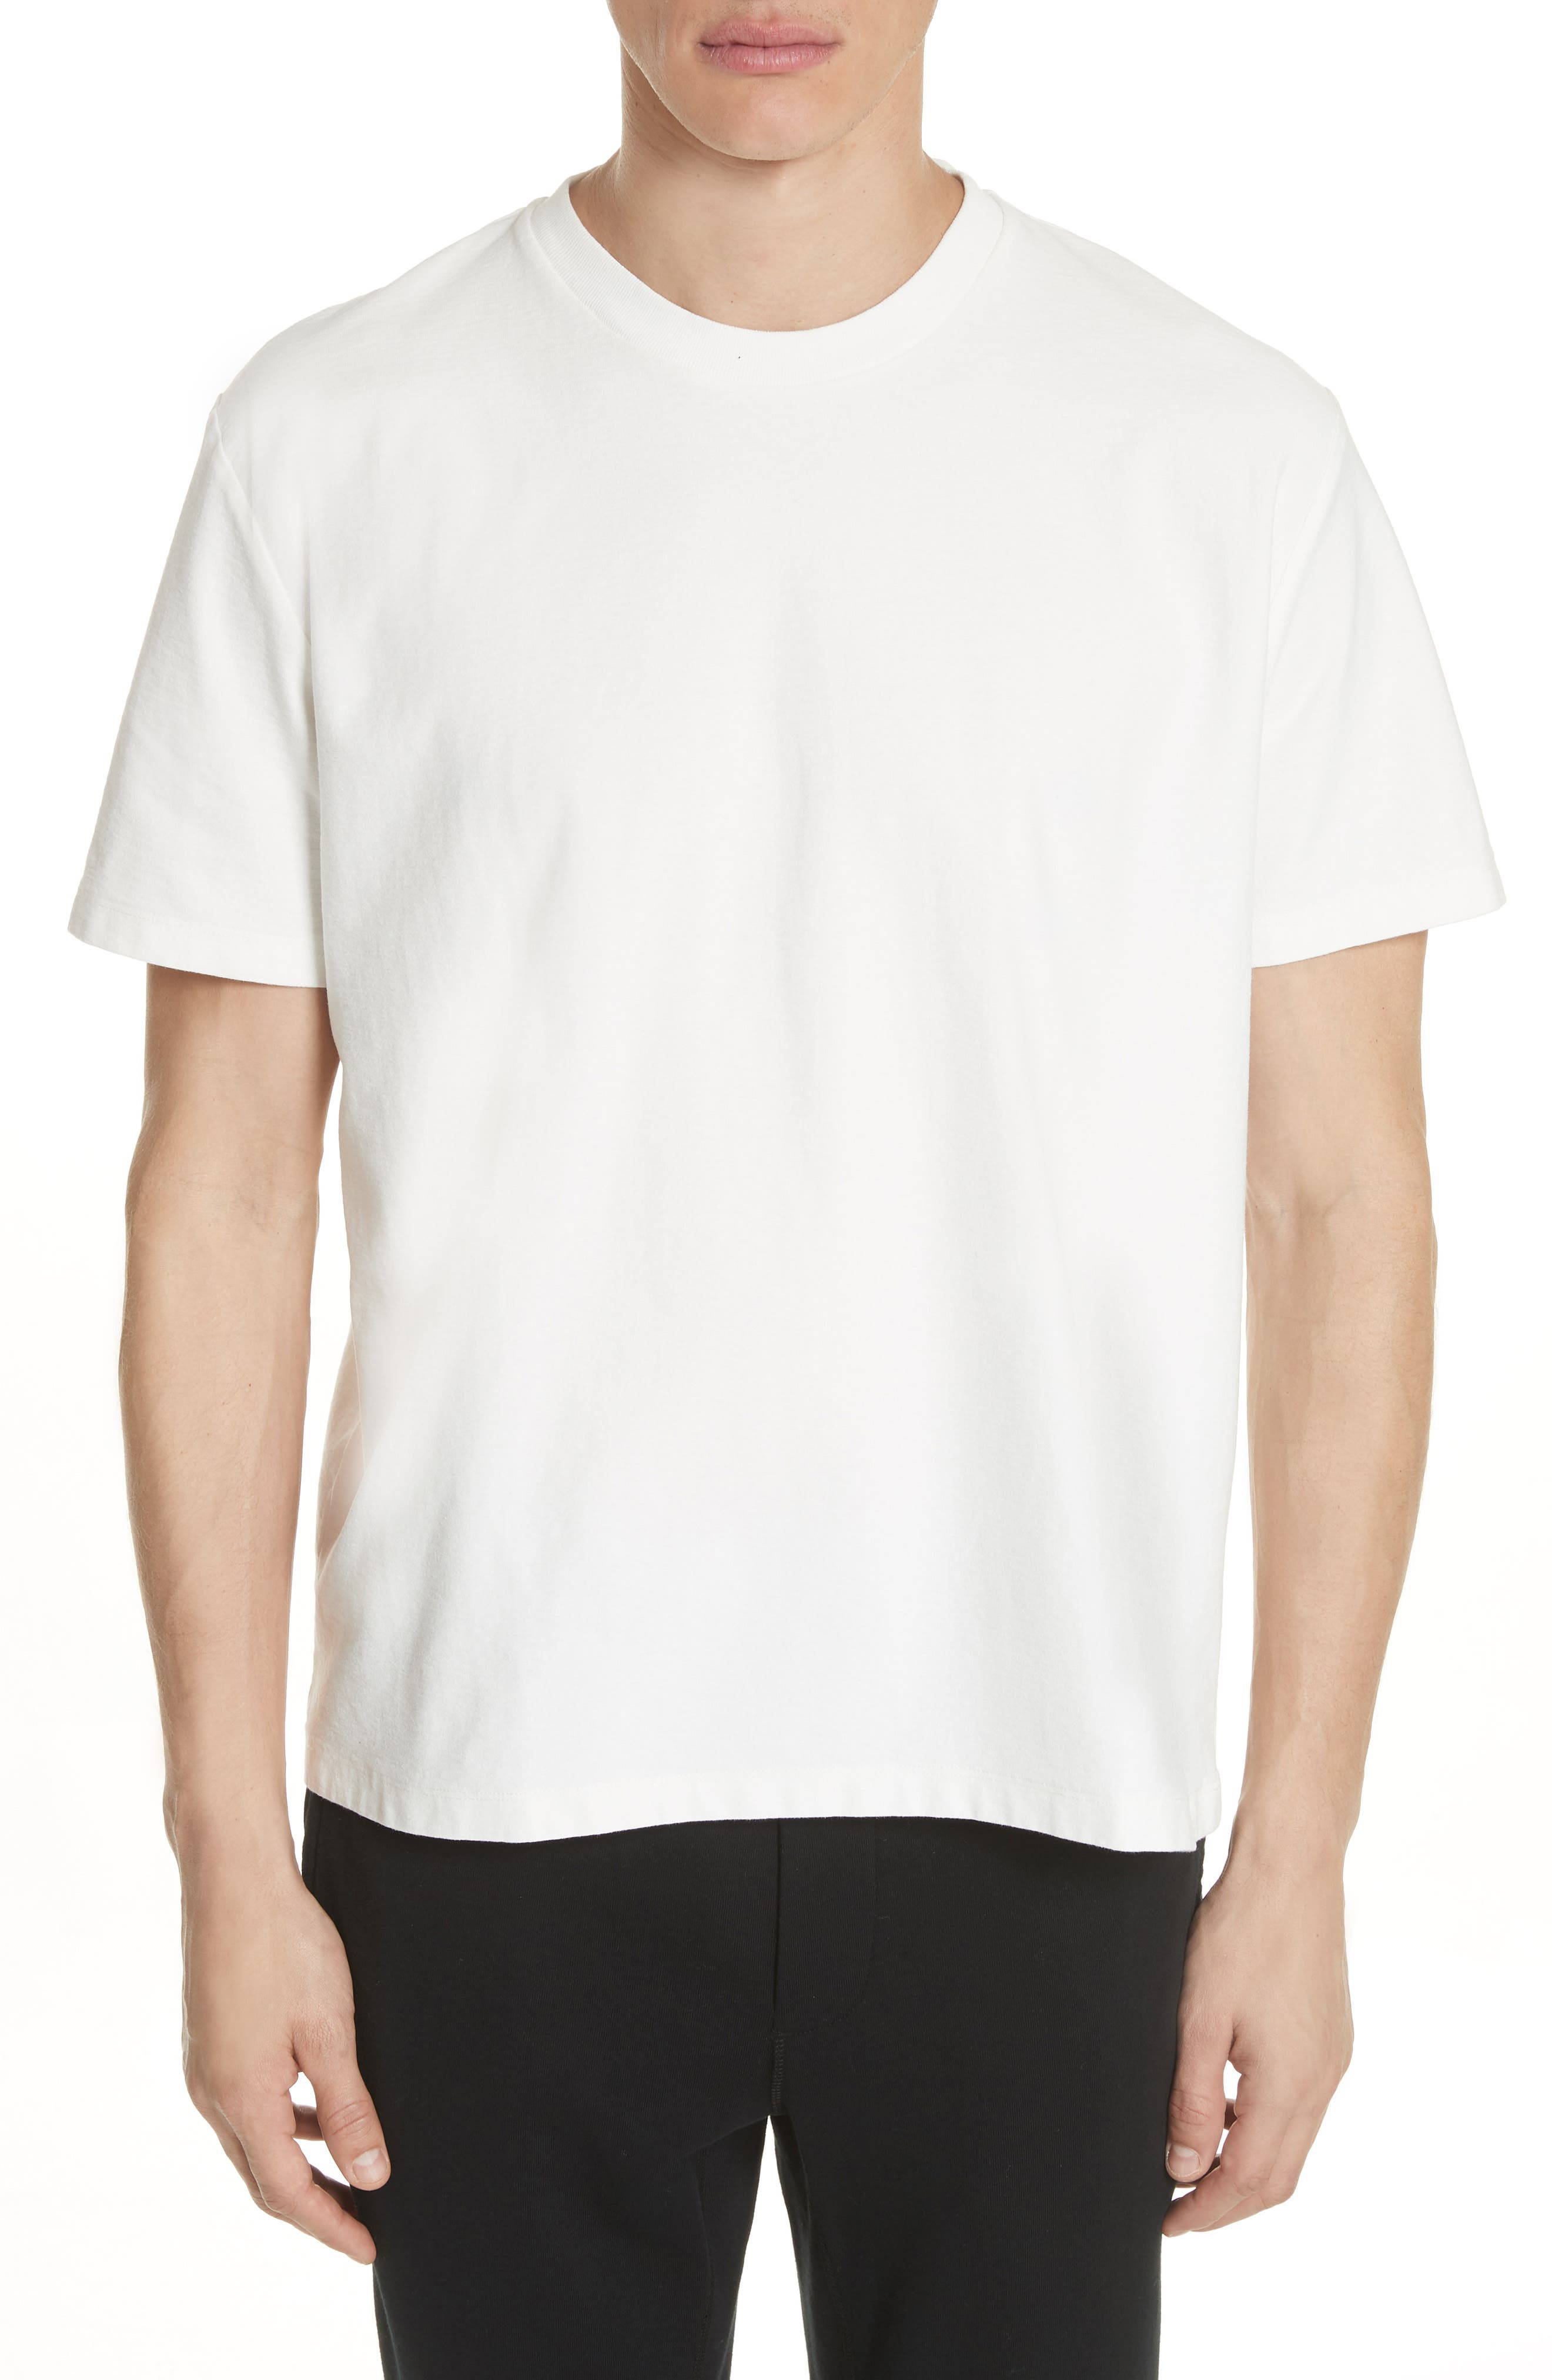 Python Embroidered T-Shirt,                             Main thumbnail 1, color,                             White